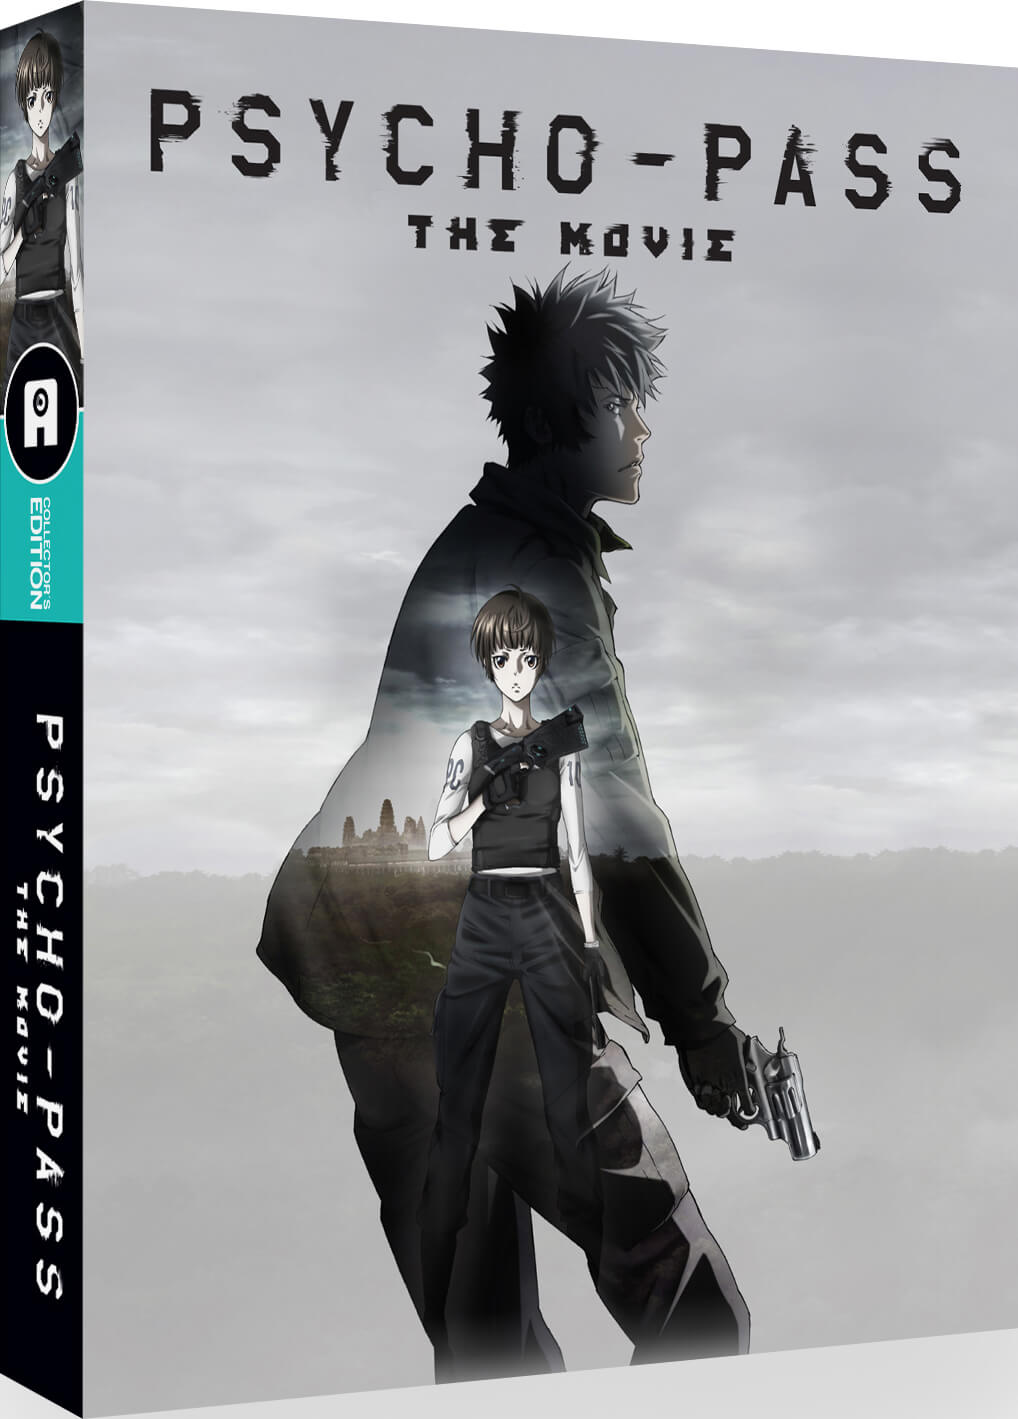 PSYCHO-PASS: The Movie Collector